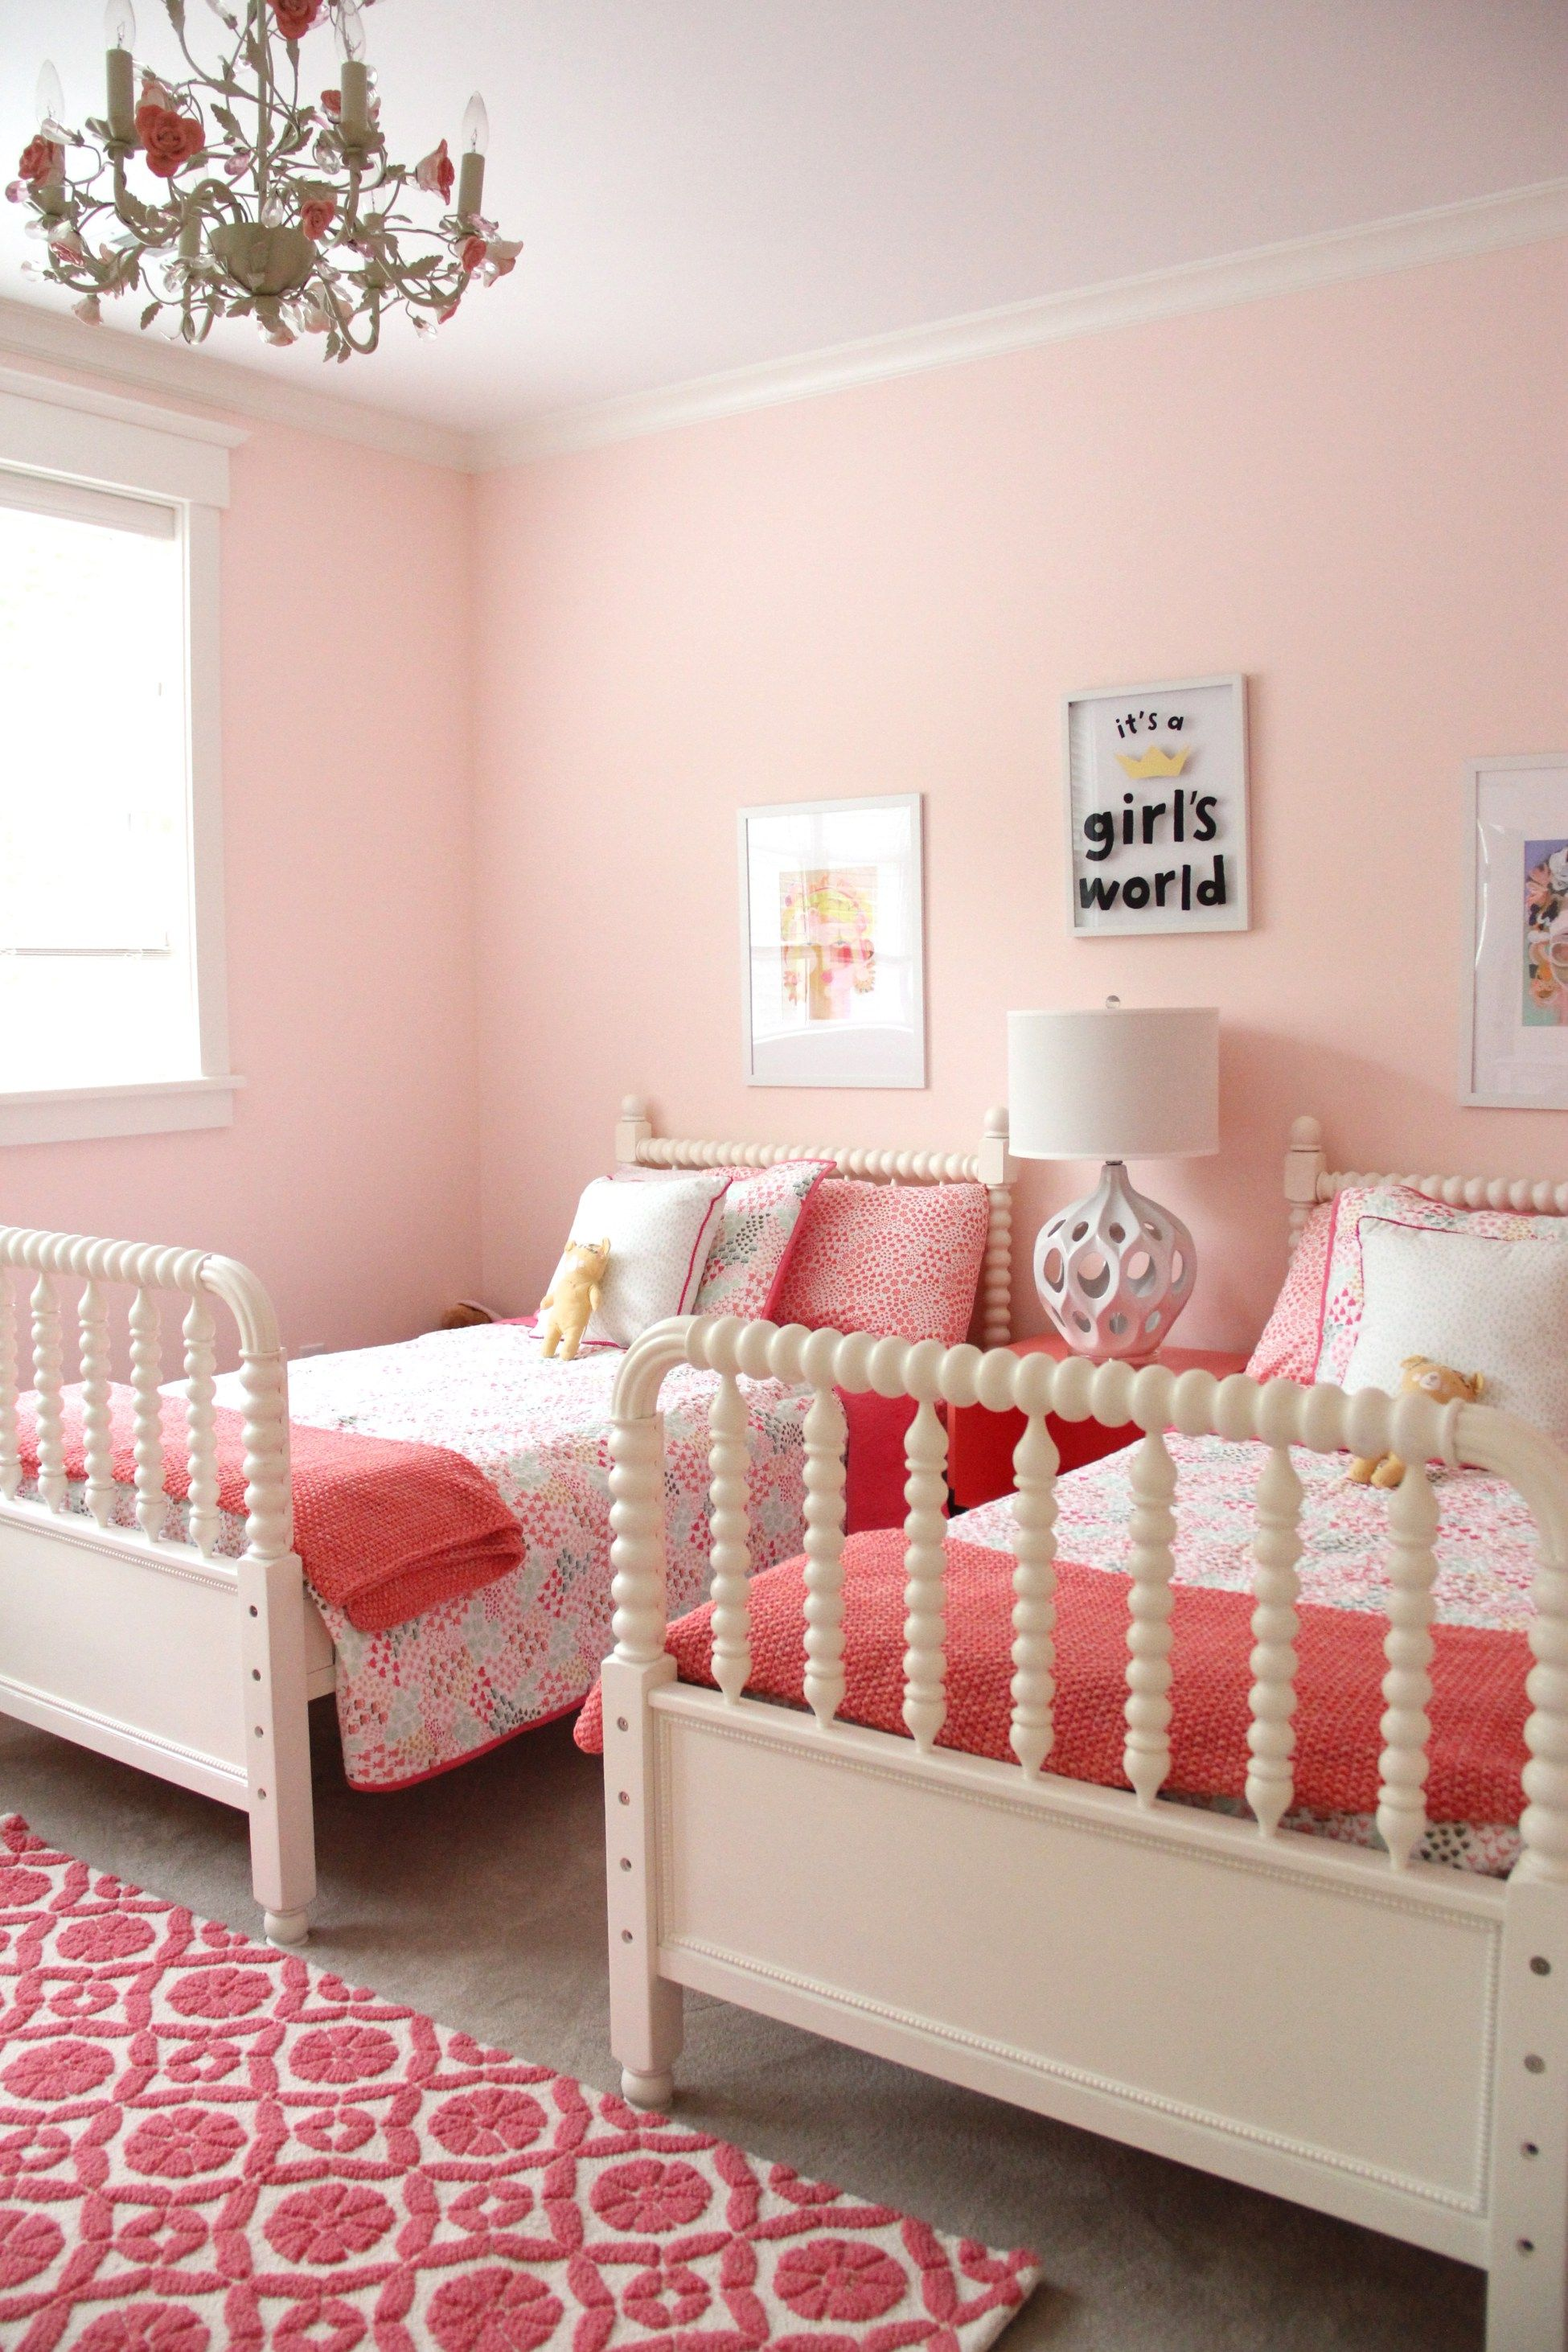 Shared S Bedroom Is A Mix Of Pinks And Cs Surpising Great Combination